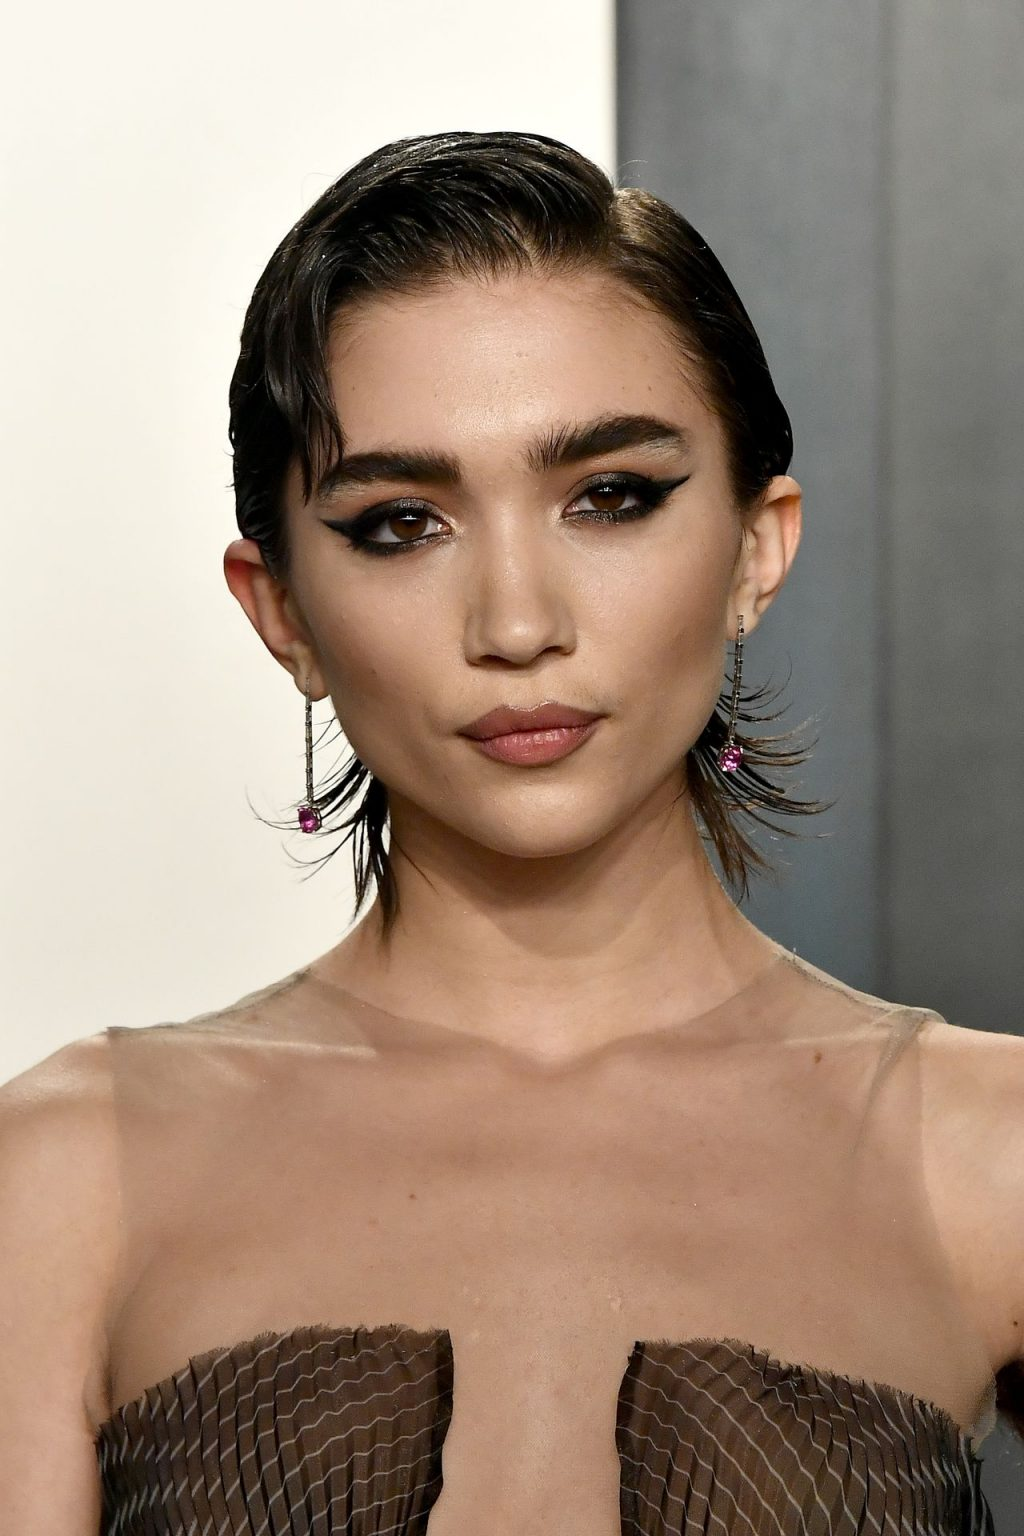 Rowan Blanchard Flaunts Her Young Figure at the Vanity Fair Oscar Party (29 Photos)